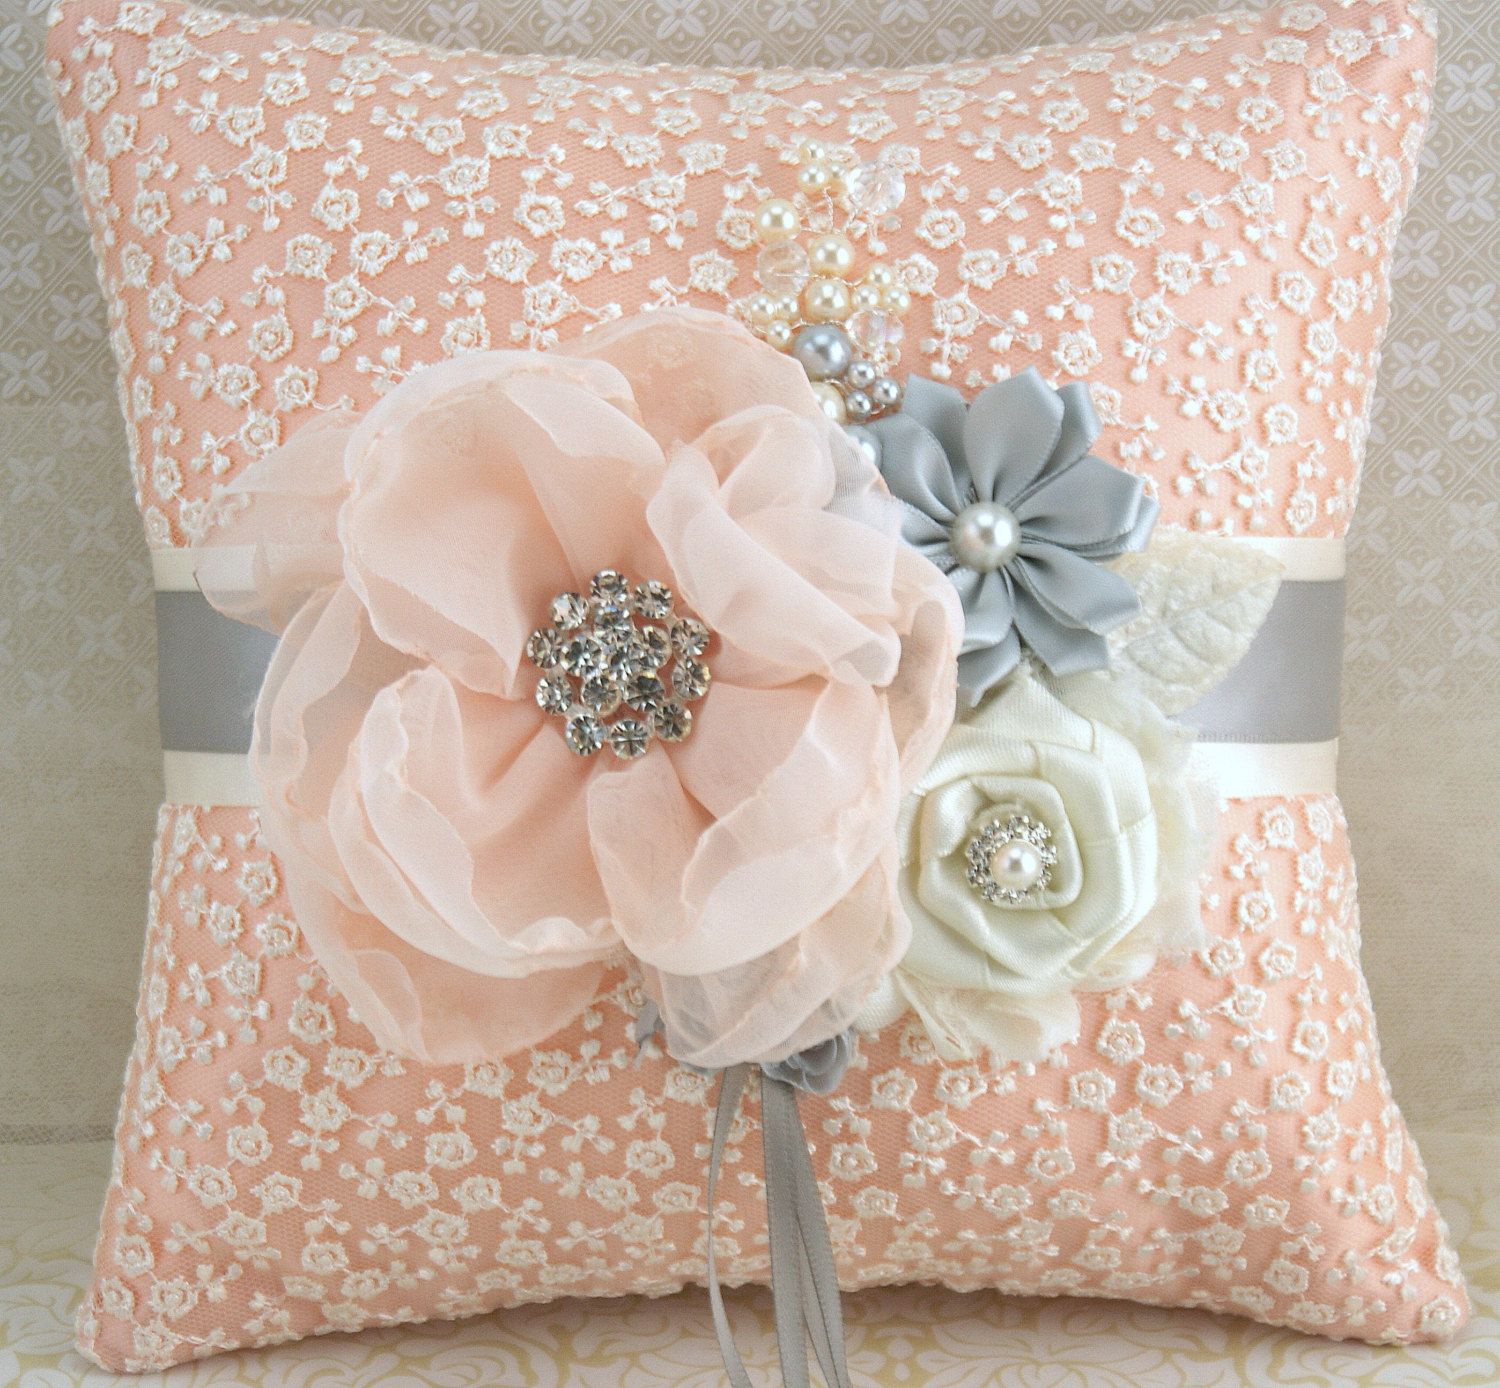 Ring Bearer Pillow Bridal Pillow Wedding Pillow in Ivory Peach and Light Grey with Lace & Ring Bearer Pillow Bridal Pillow Wedding Pillow in Ivory Peach ... pillowsntoast.com